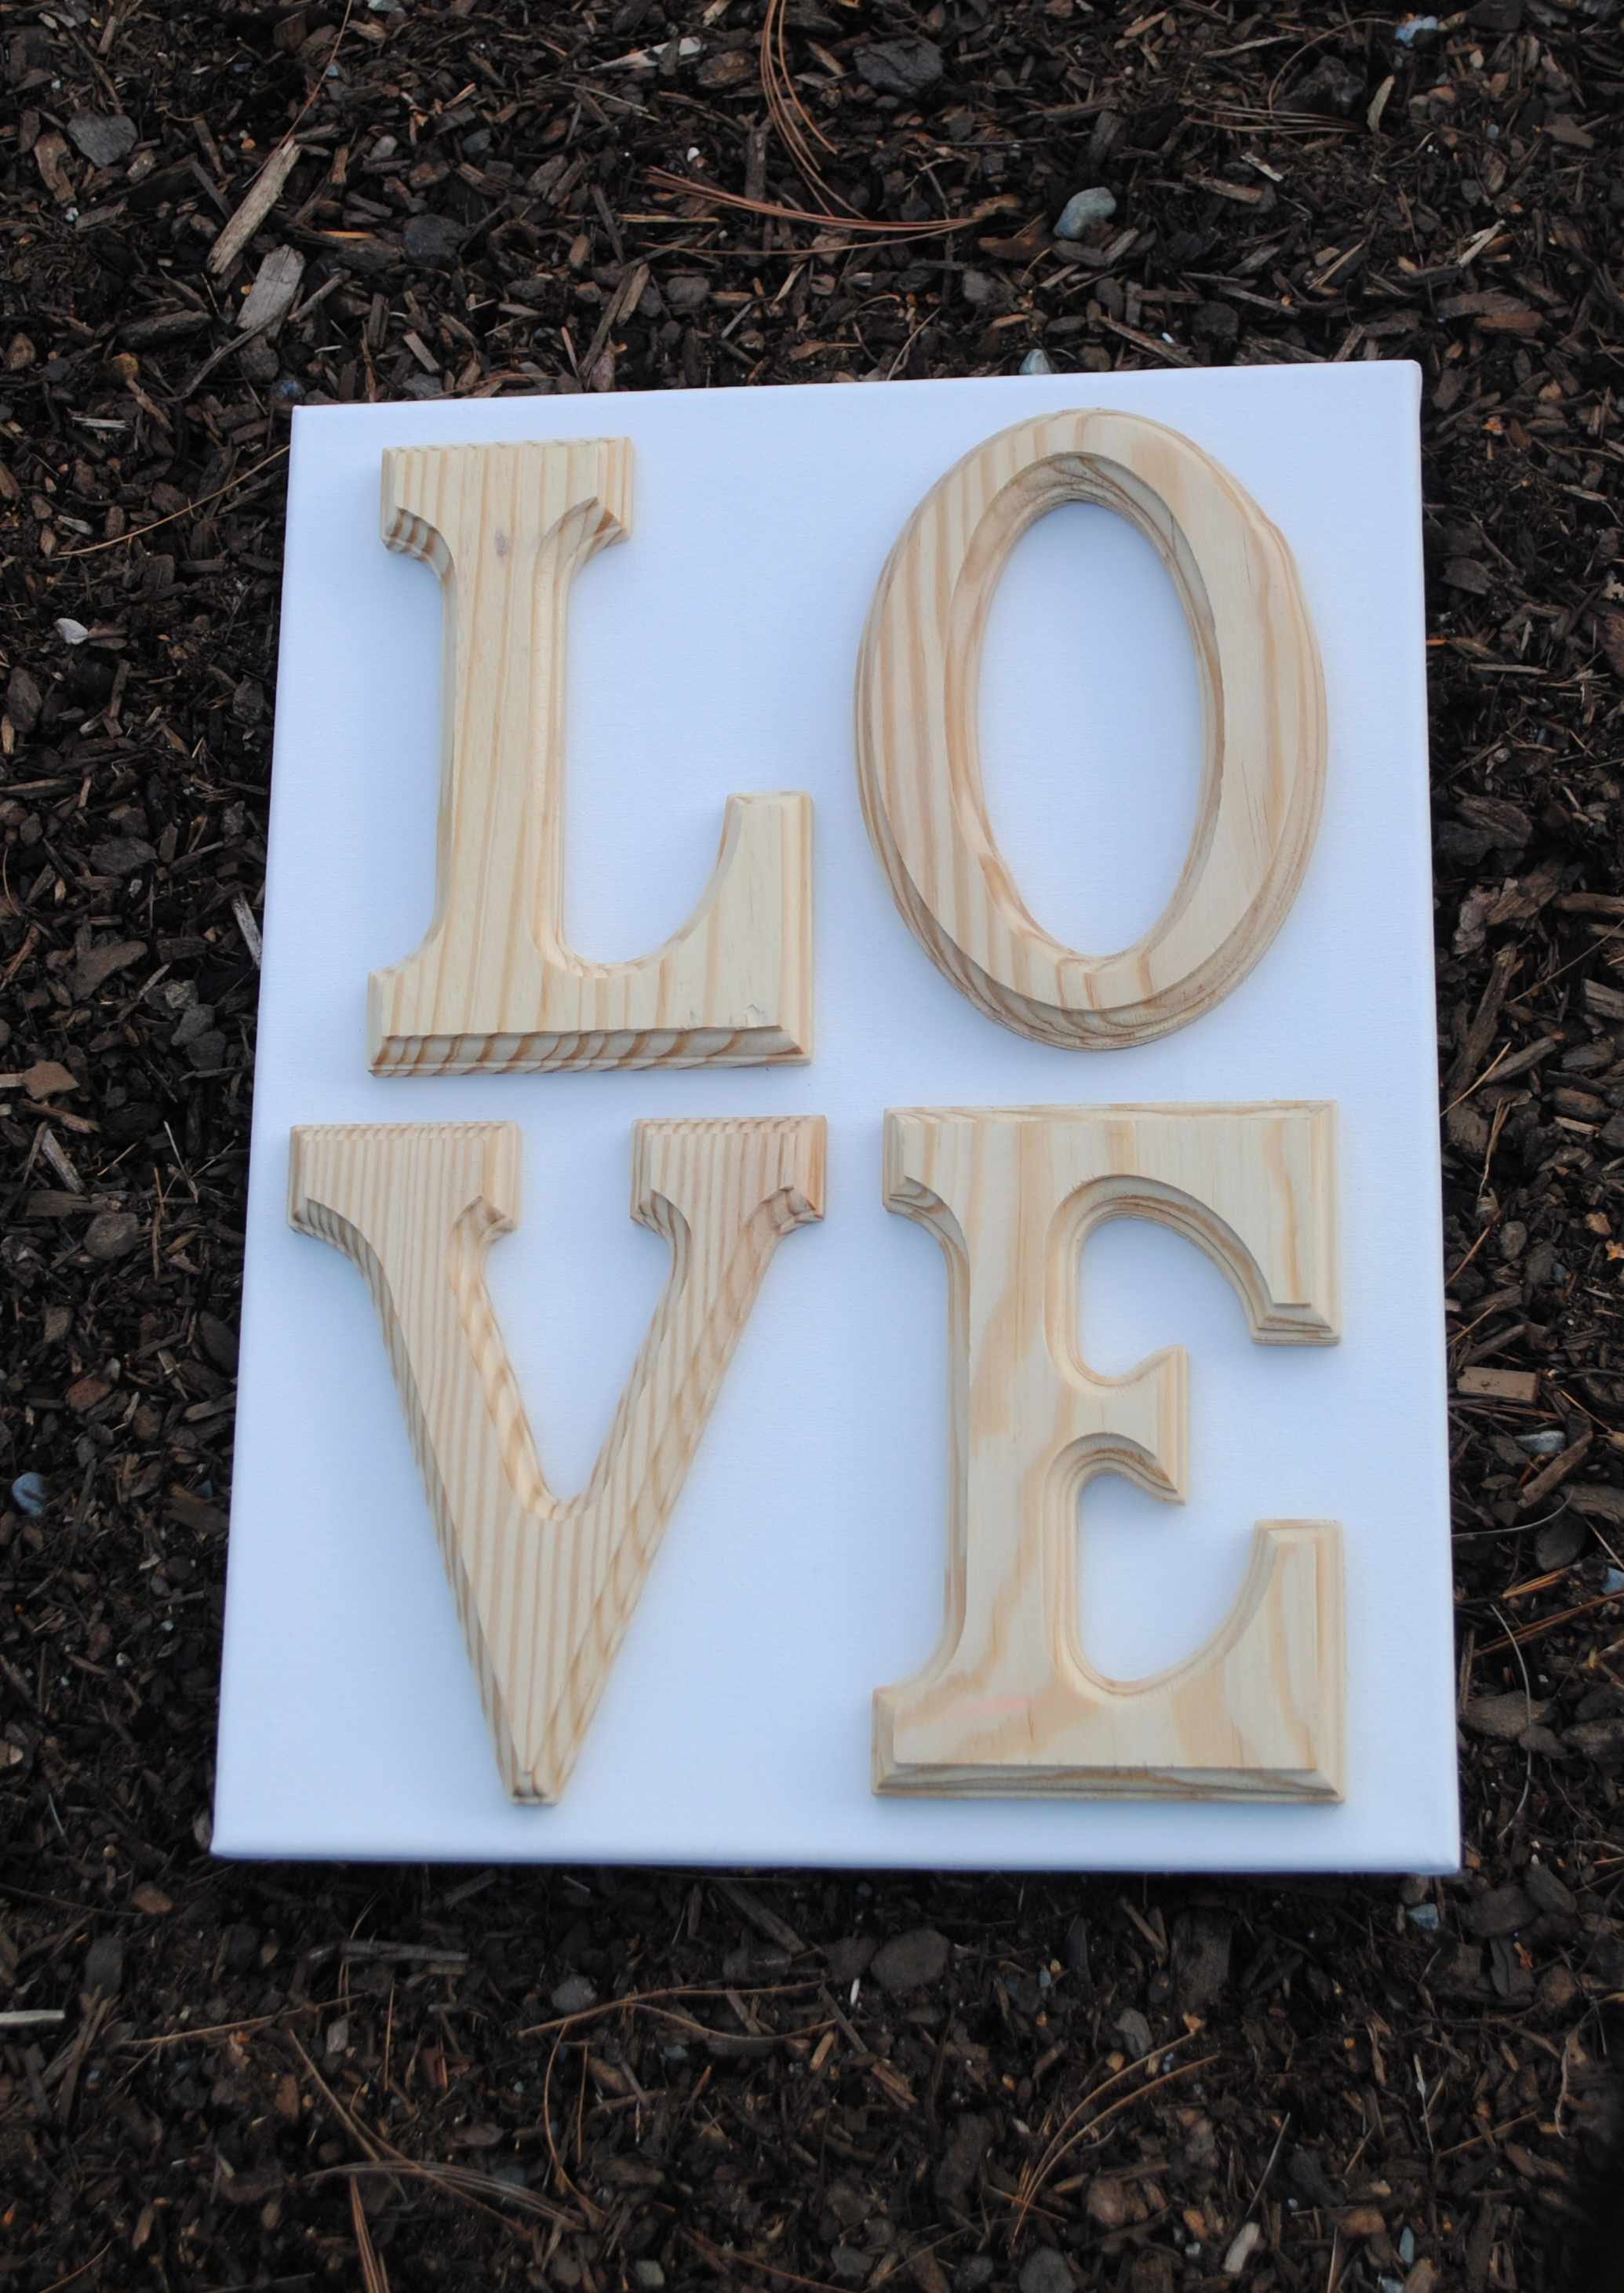 How to paint wooden letters on canvas for Wooden letters on canvas